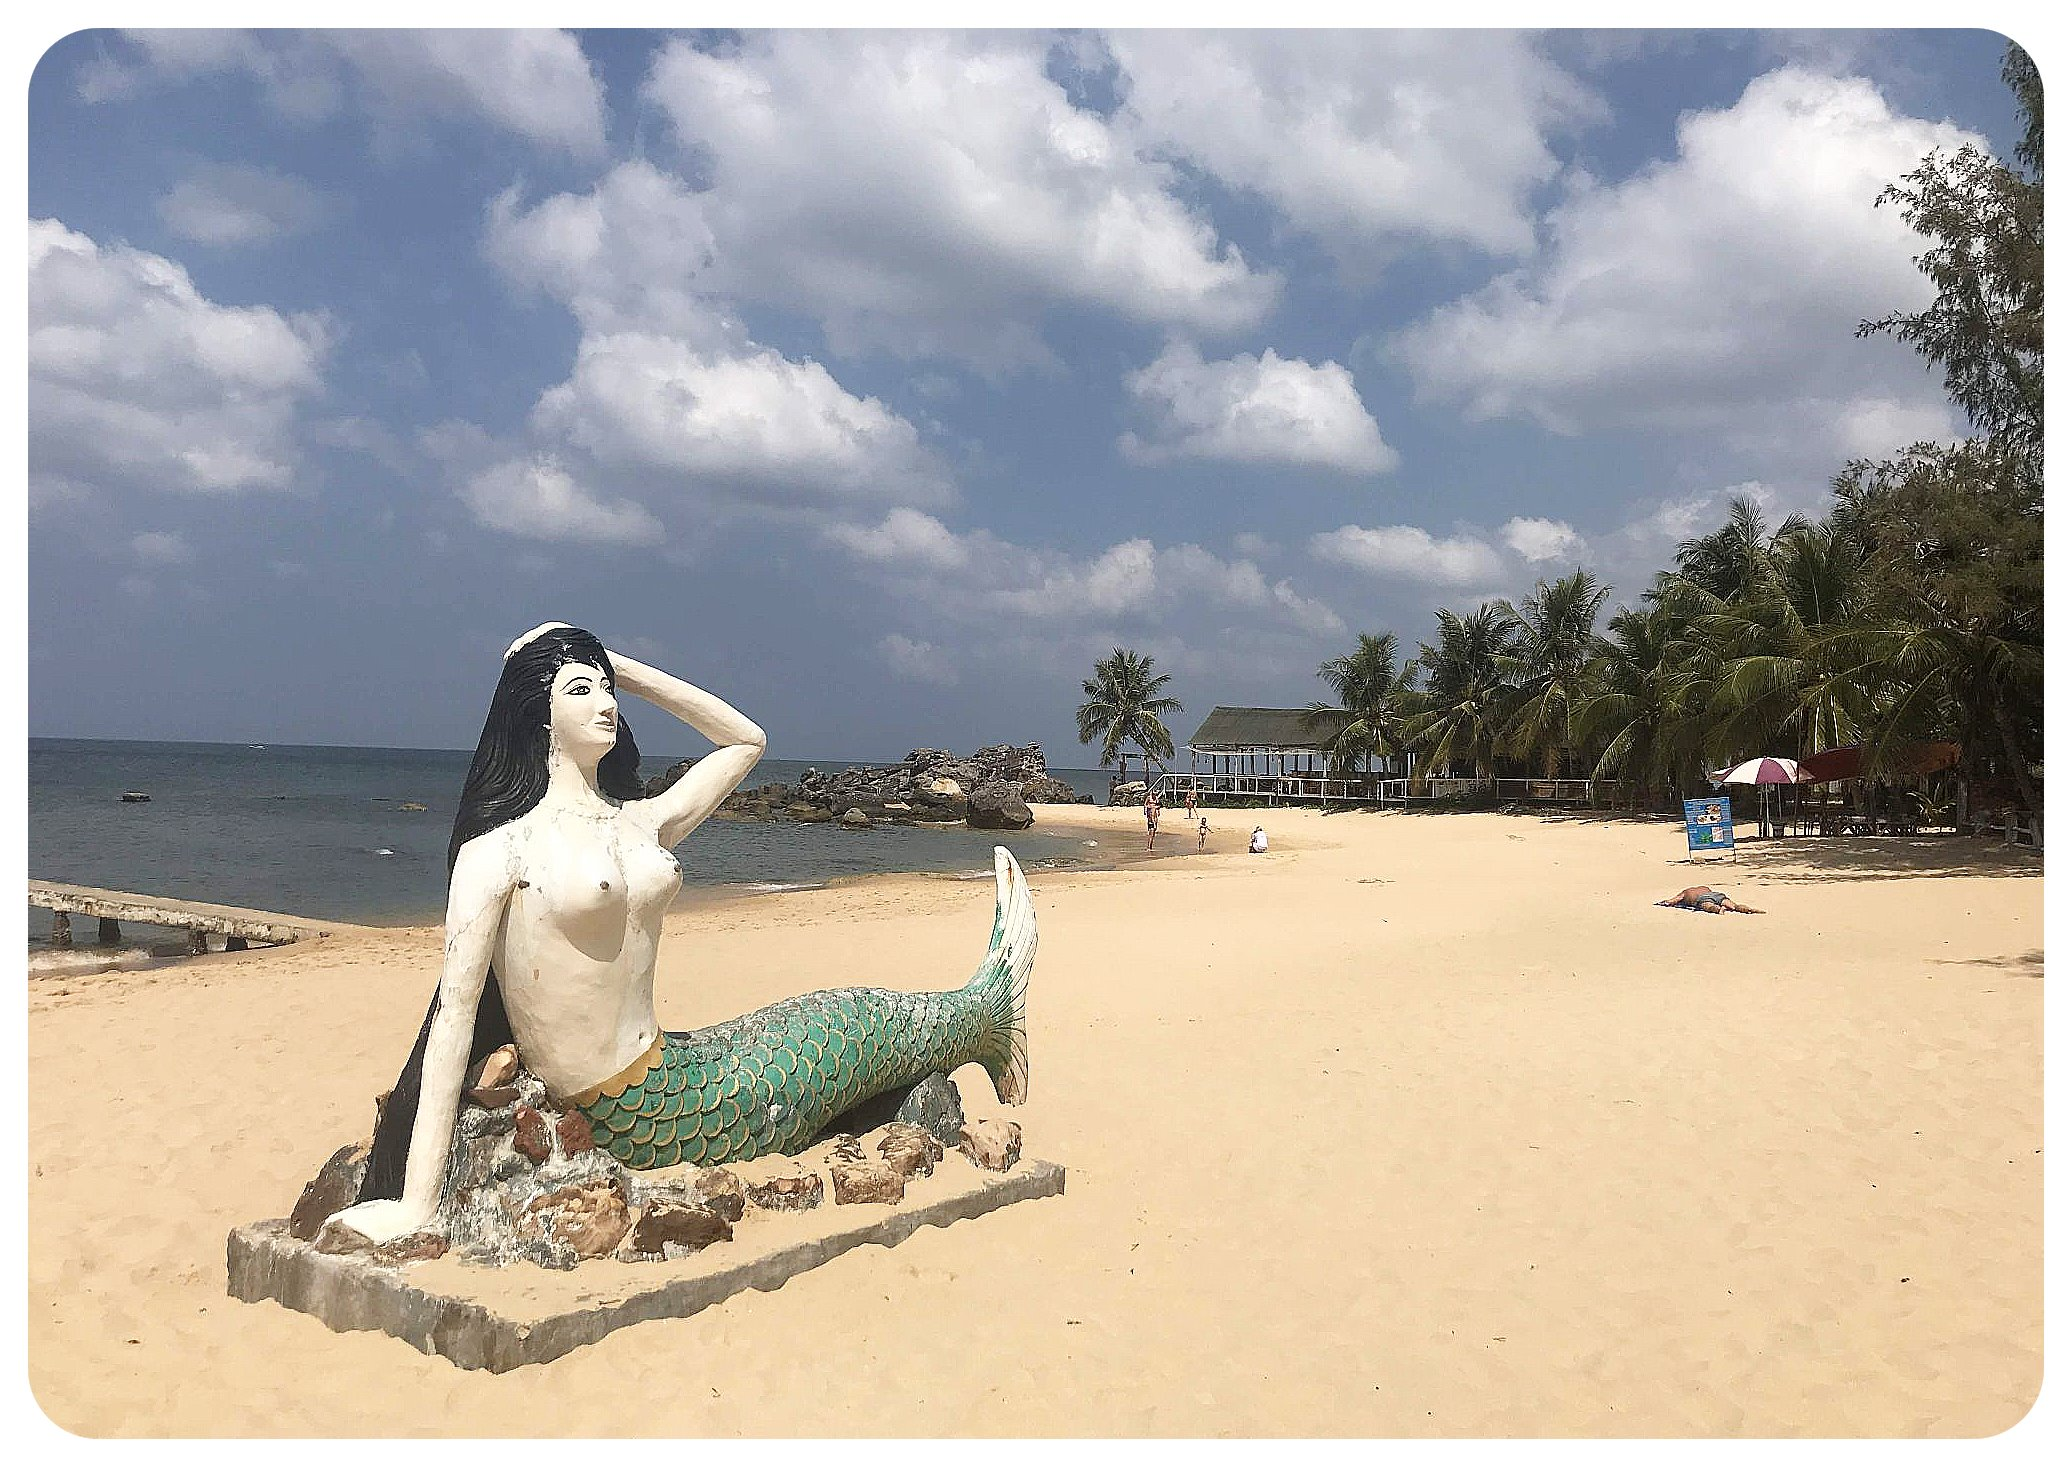 phu quoc vietnam beach mermaid statue